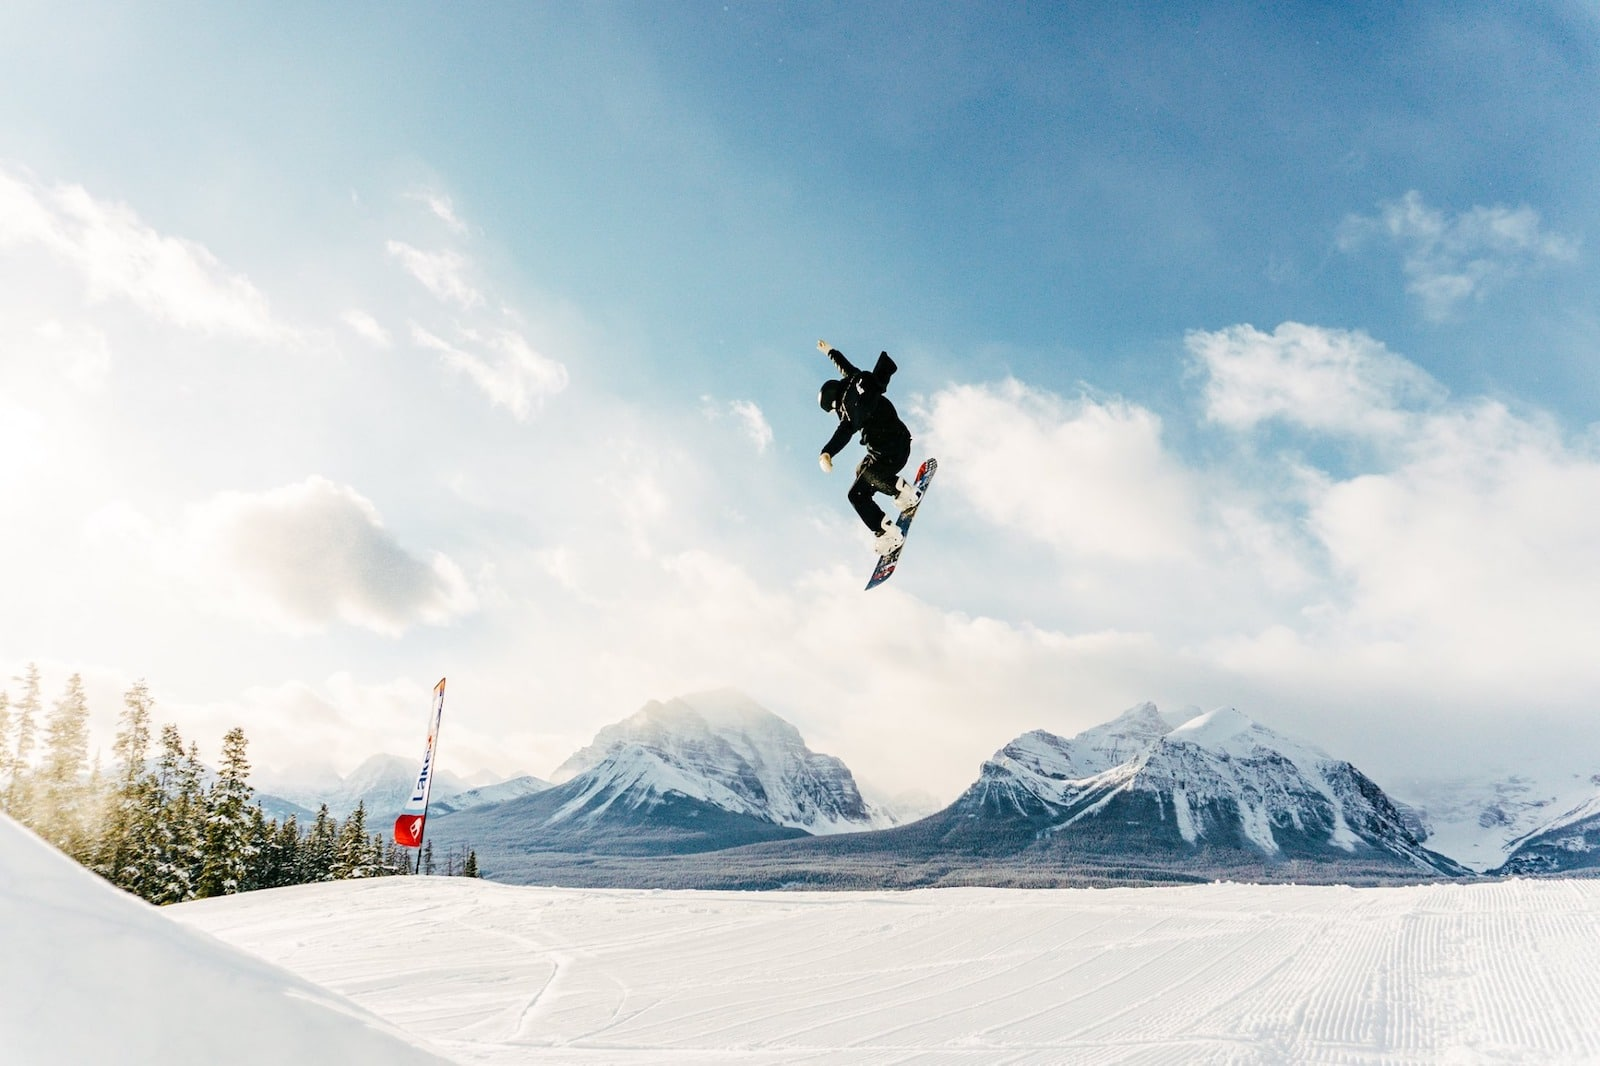 Image of a snowboarder in black catching big air at Lake Louise Ski Resort in Canada